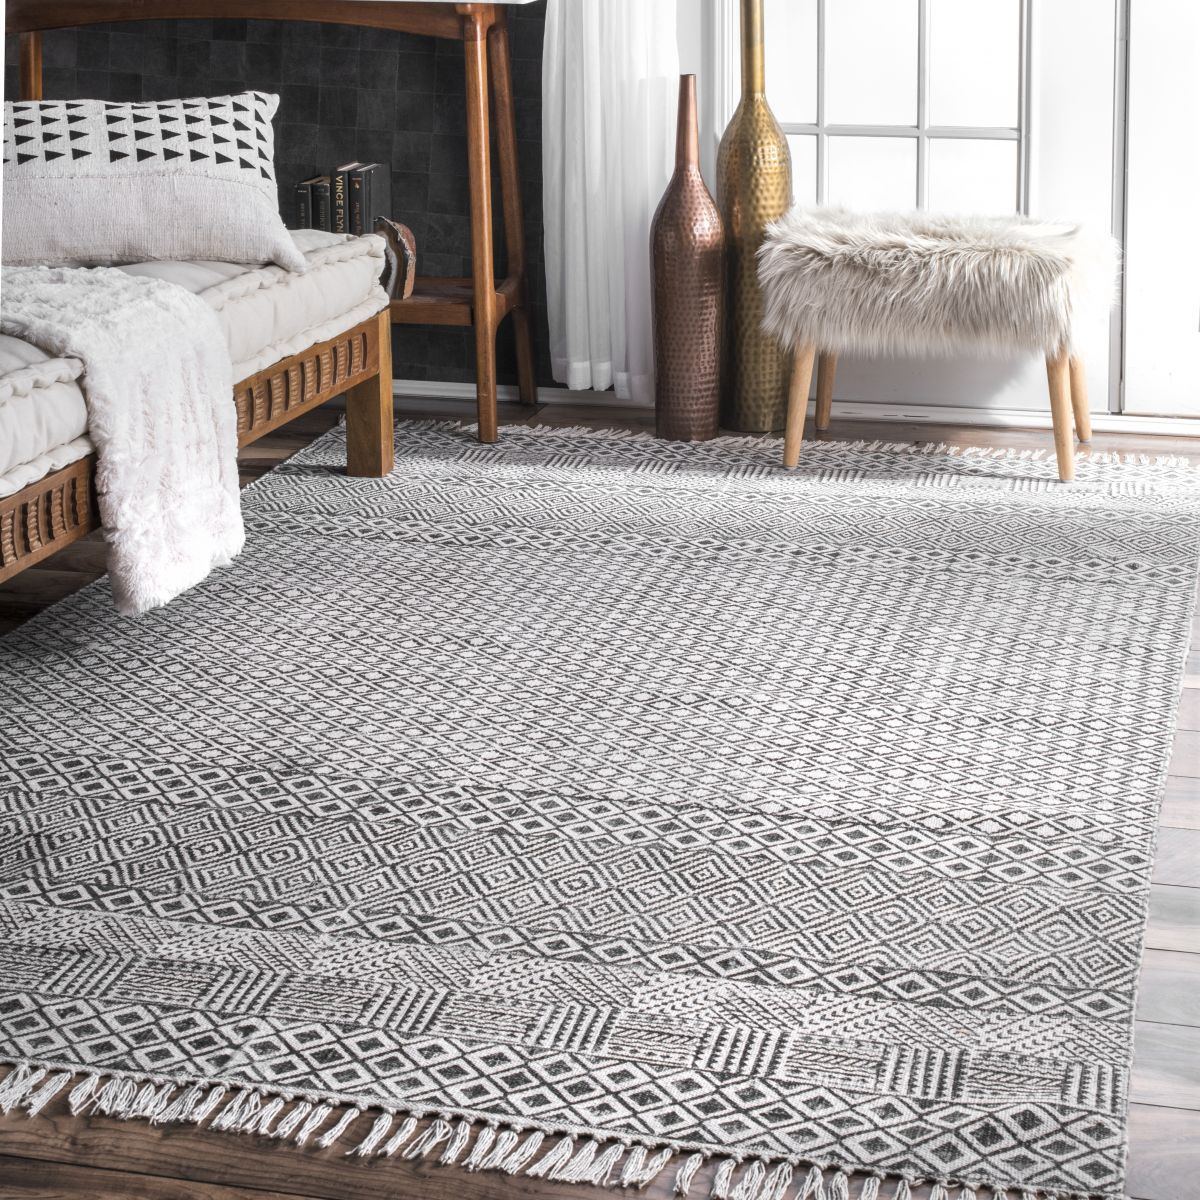 Chembra Block Printed Cotton Flatweave Varied Bands Gray Rug In 2020 Grey Area Rug Light Grey Area Rug Farmhouse Rugs